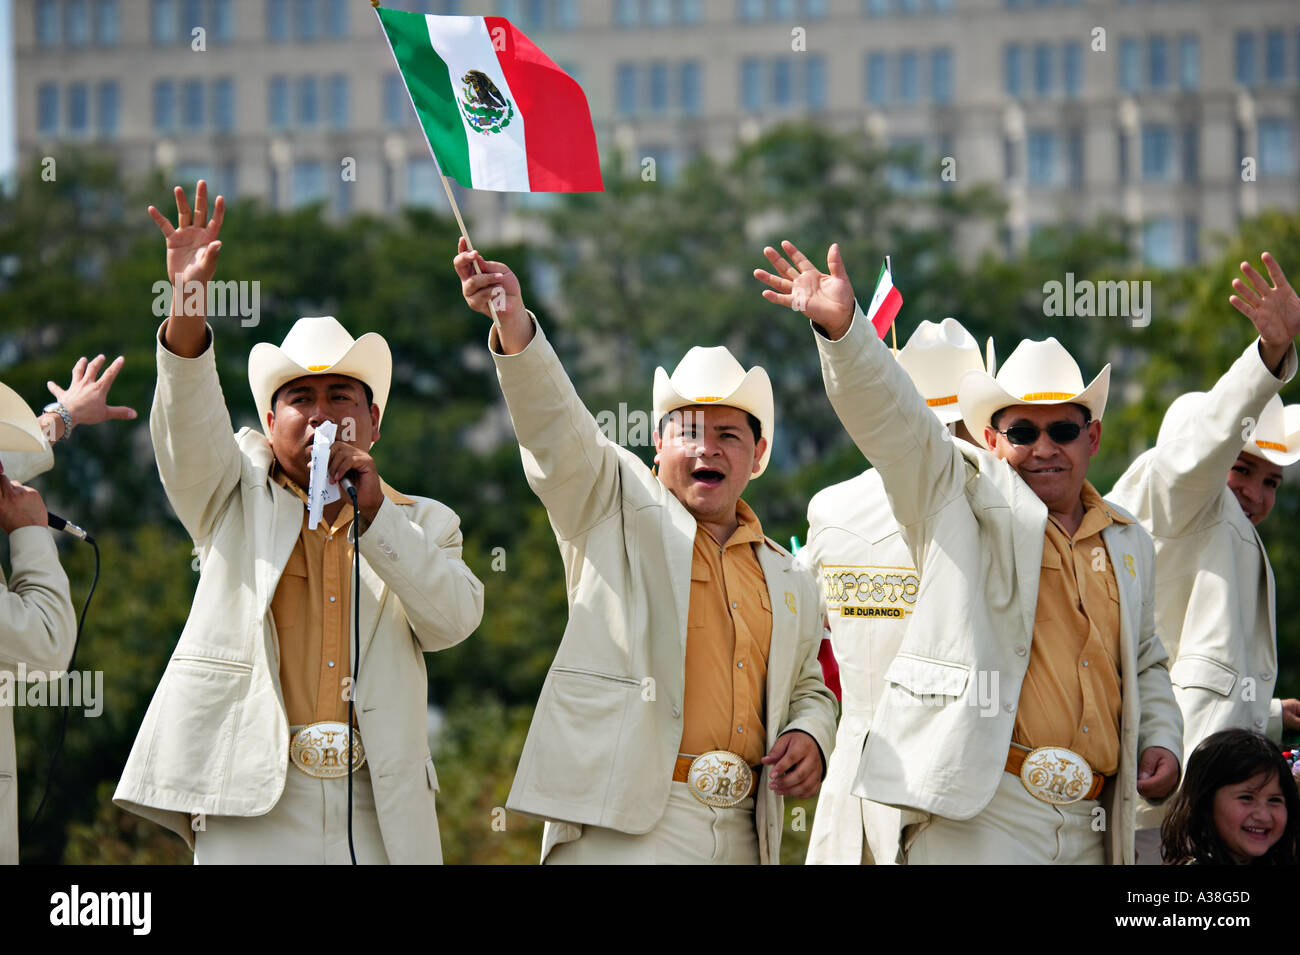 fc18983f4e774 ILLINOIS Chicago Members of Hispanic singing group wave Mexican flag  matching suits cowboy hats